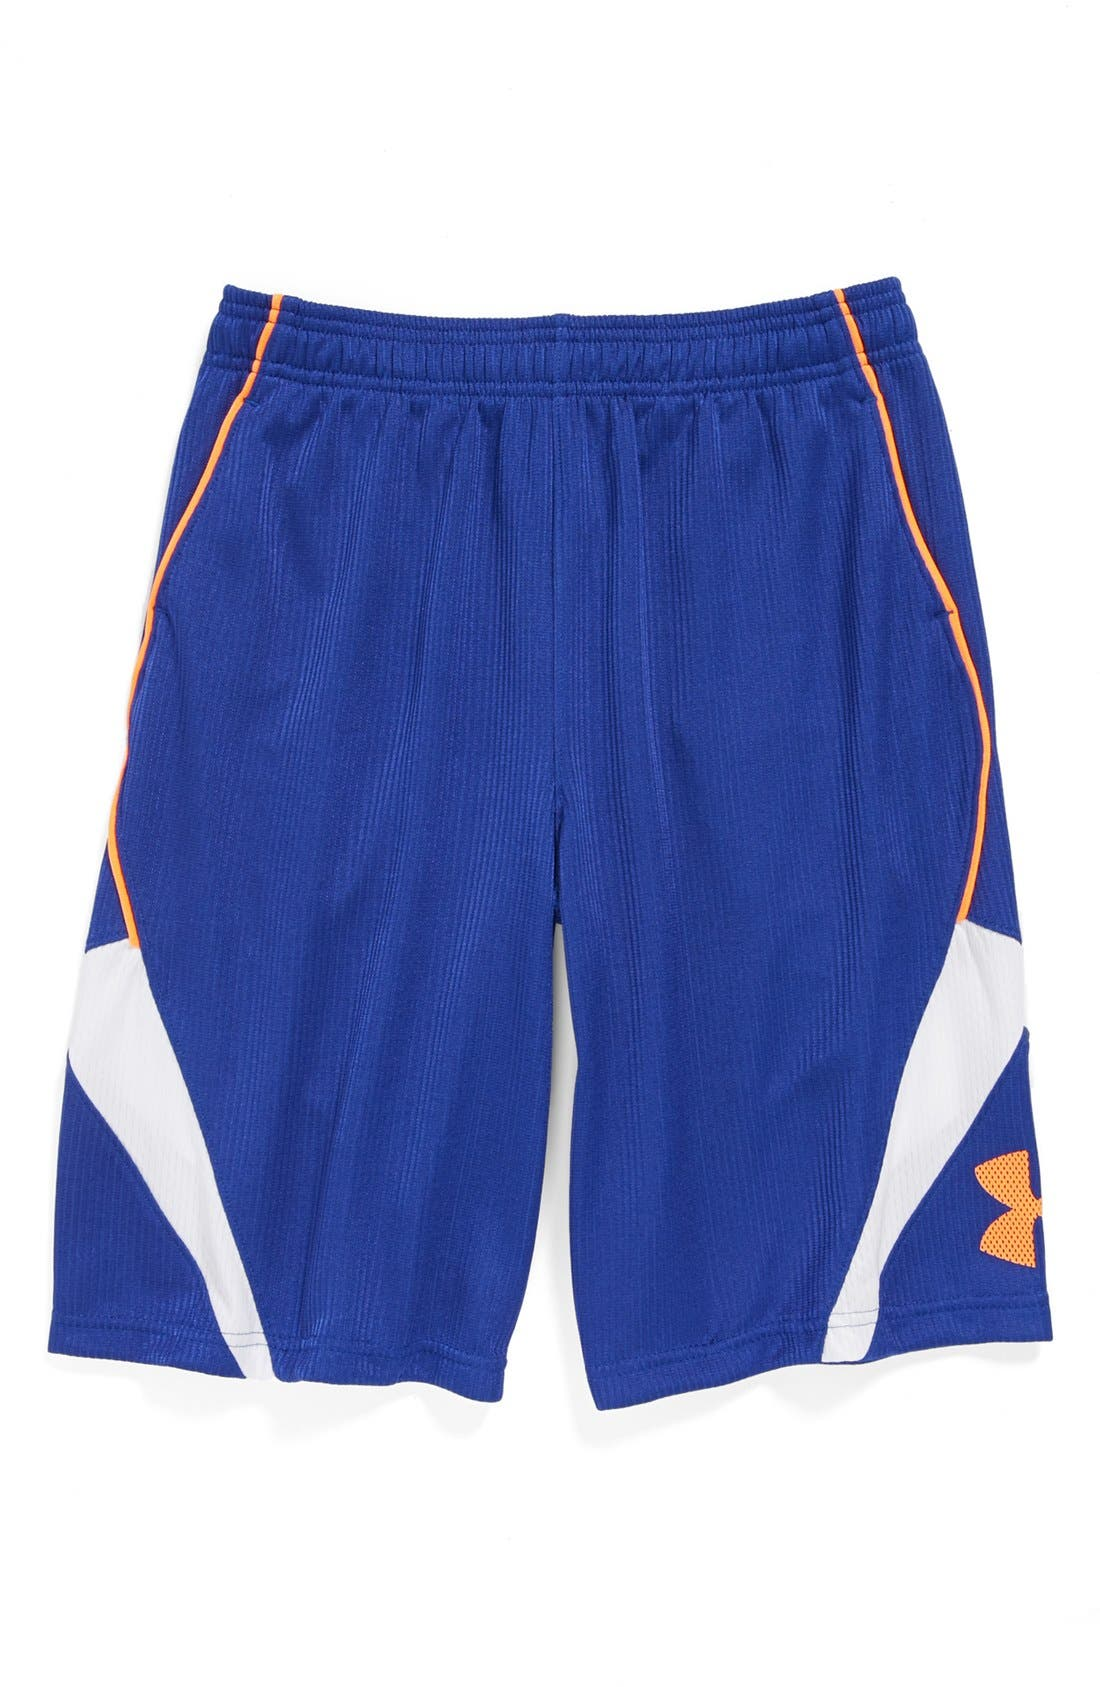 Main Image - Under Armour 'Jhawk' Shorts (Big Boys)